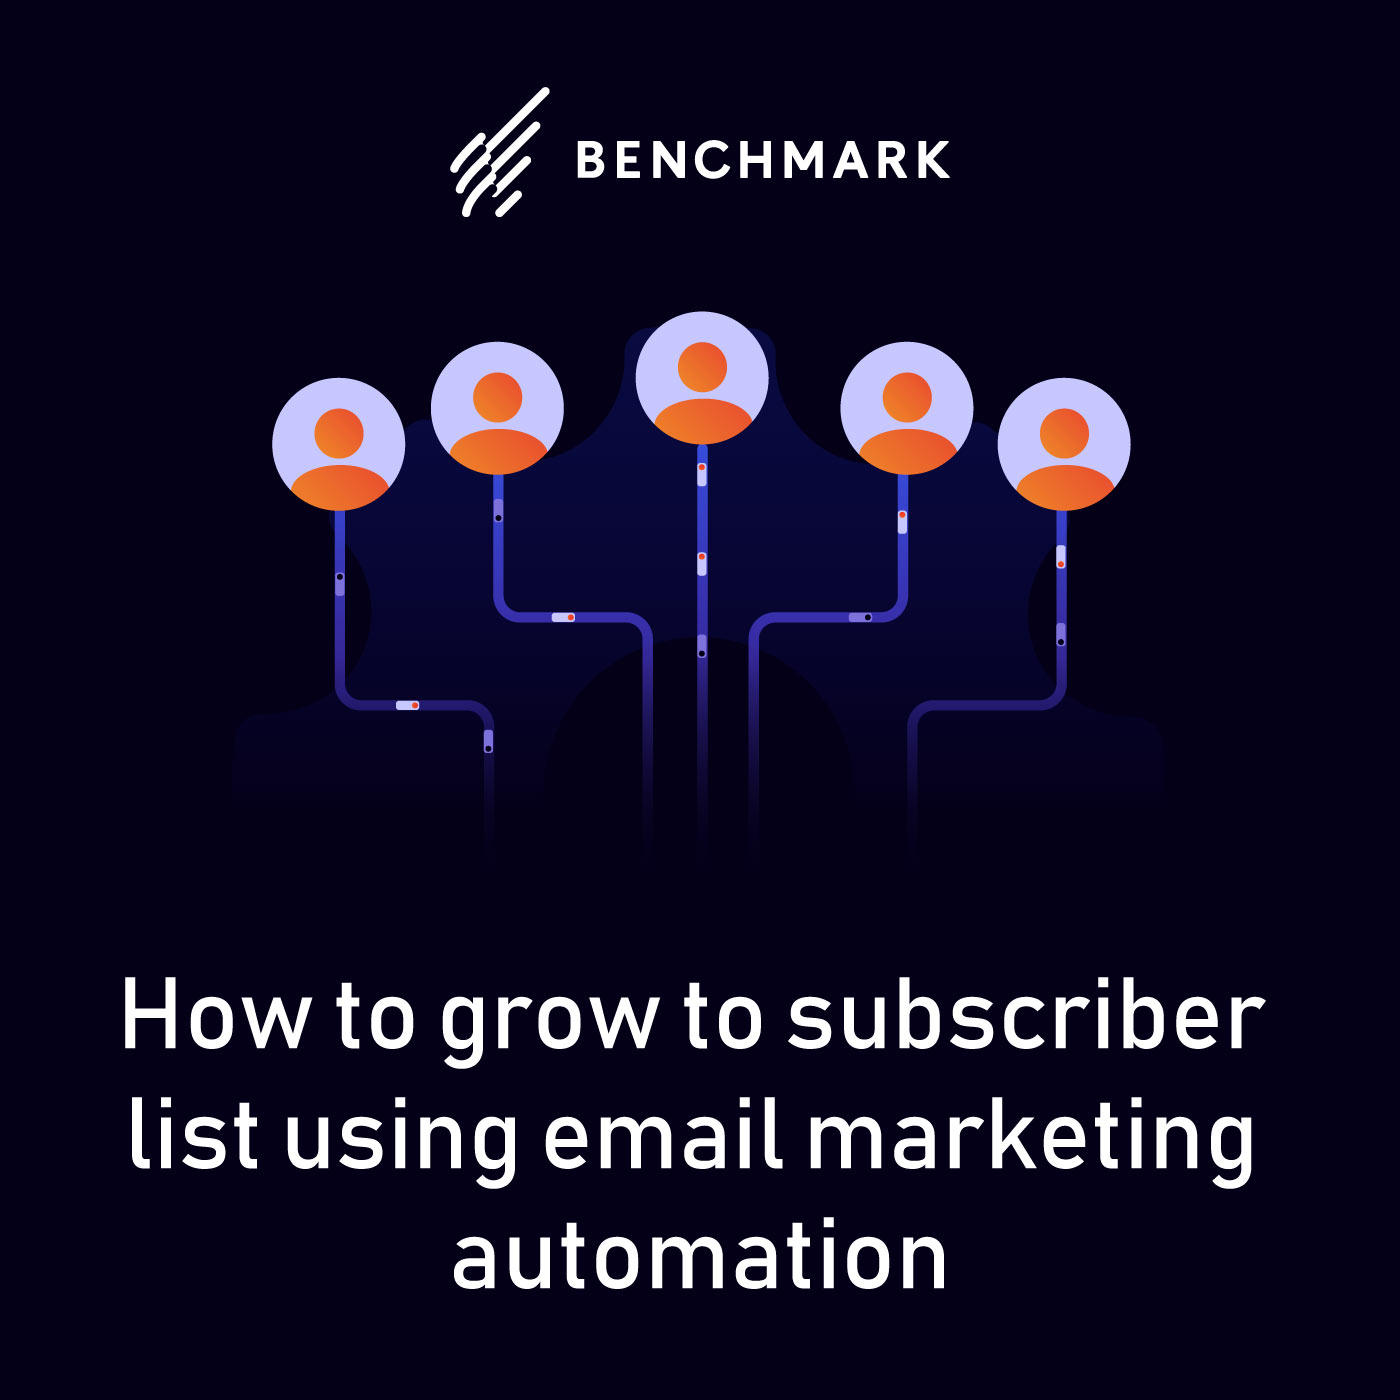 How to grow to subscriber list using email marketing automation